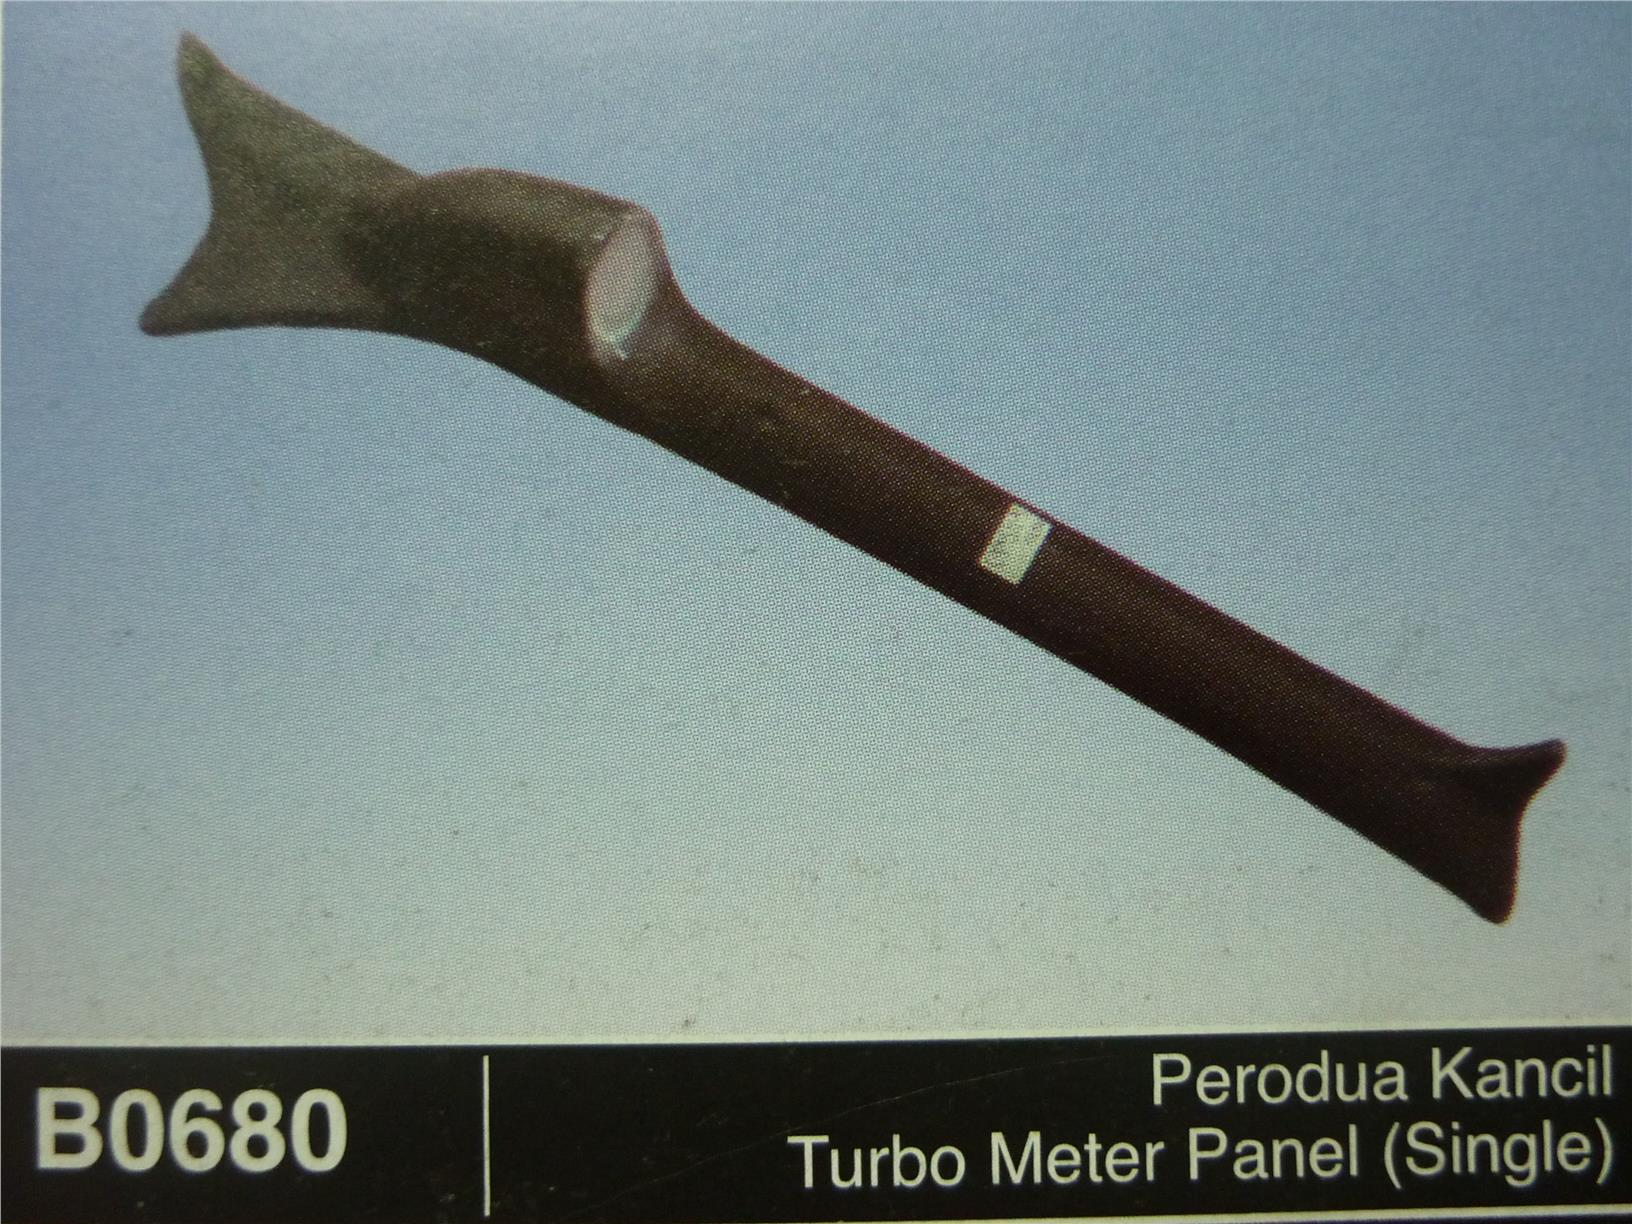 PERODUA KANCIL TURBO METER PANEL SINGLE B0680